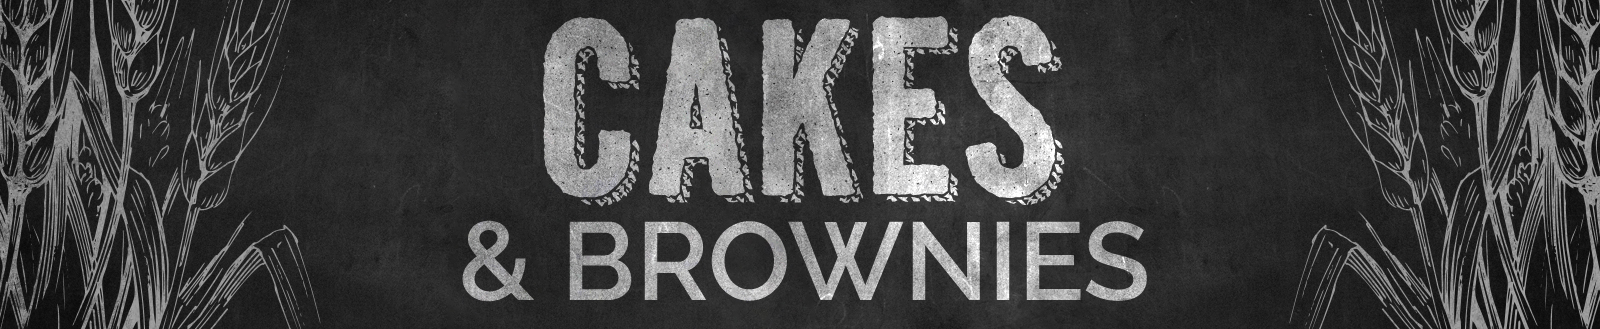 Cakes & Brownies Header